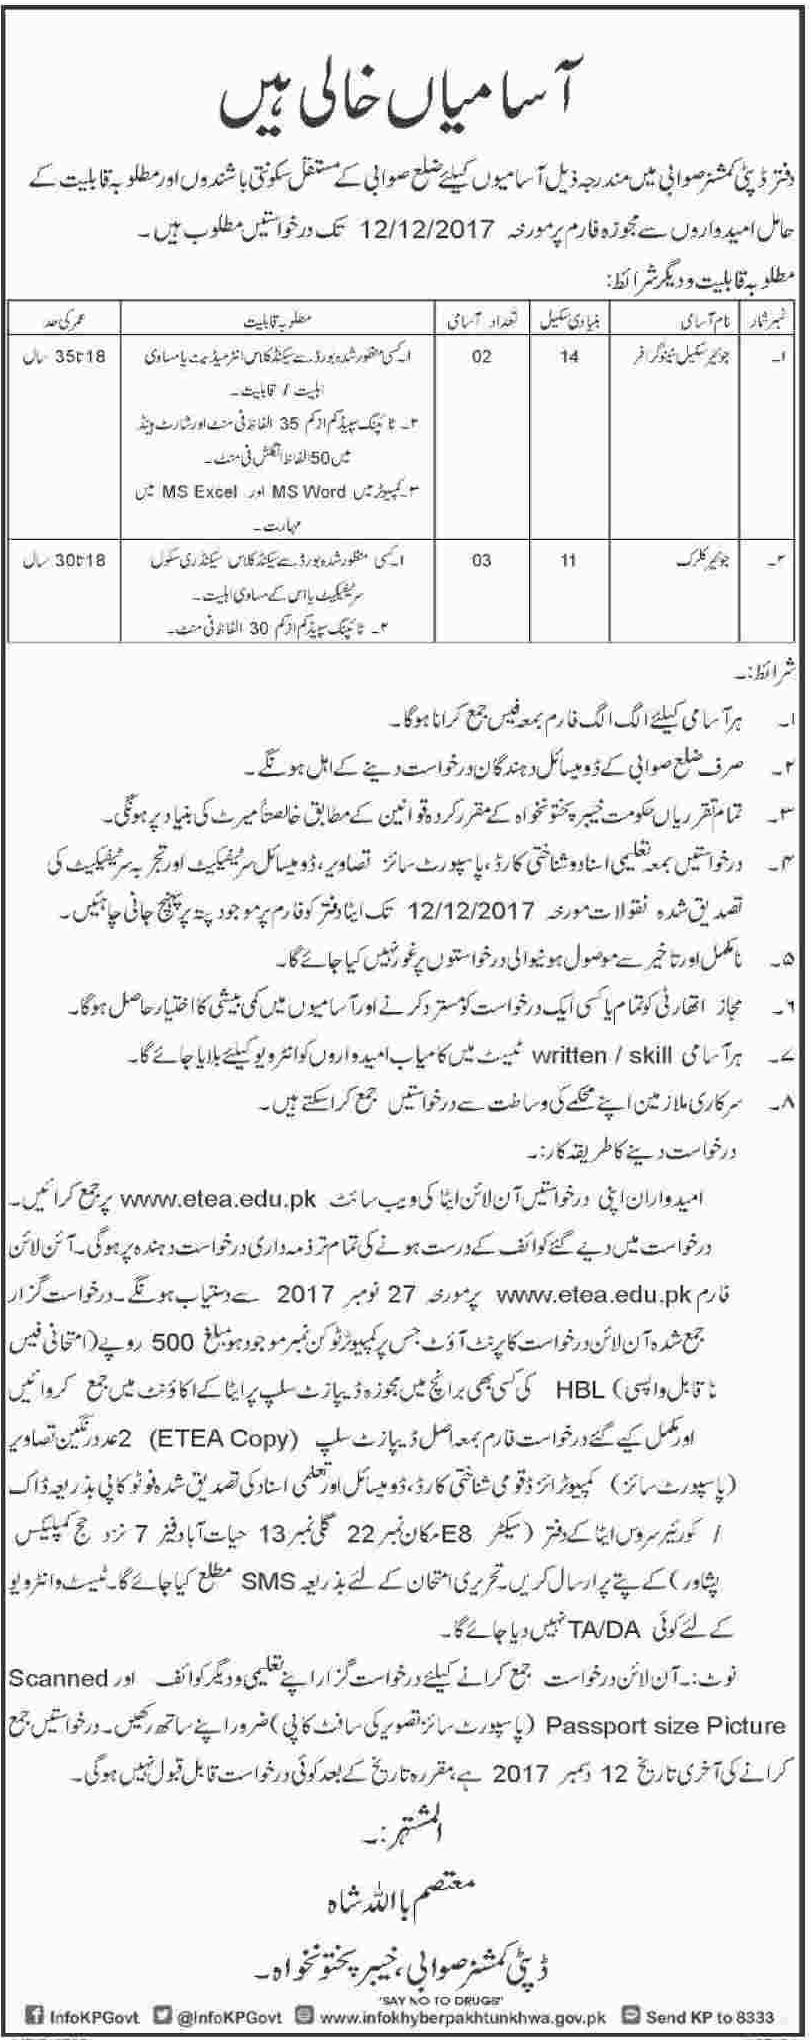 Swabi Deputy Commissioner Total 05 Jobs The Dawn Newspaper 04 December 2017